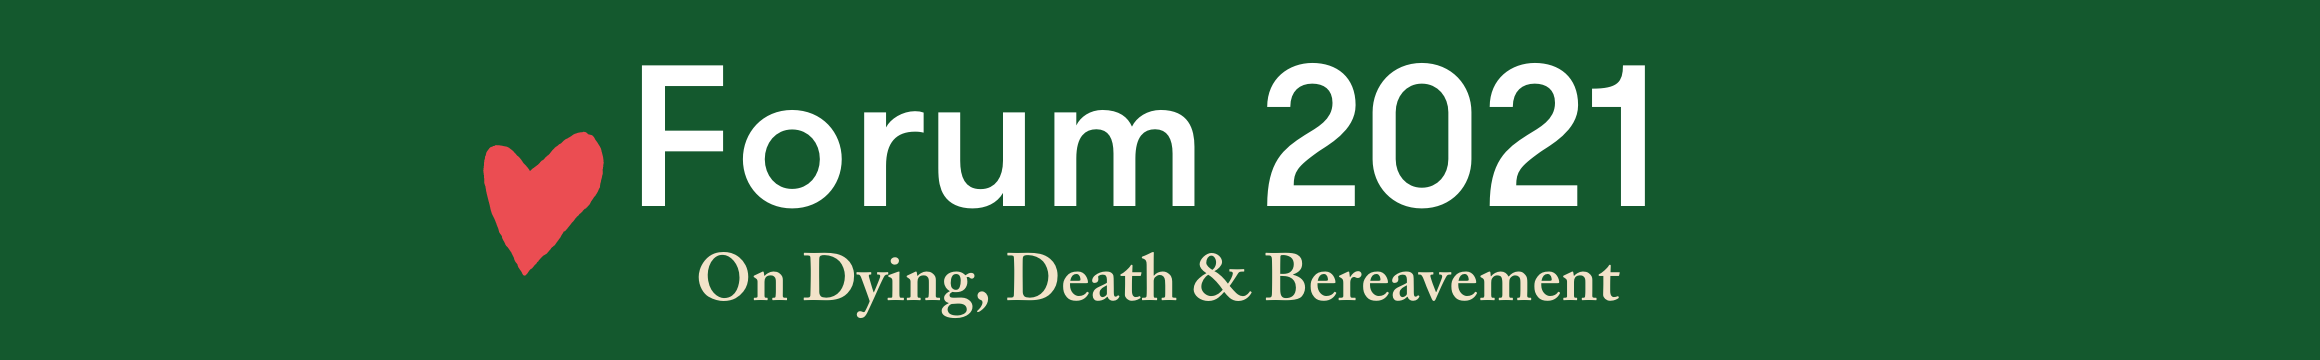 Forum 2021 national conference